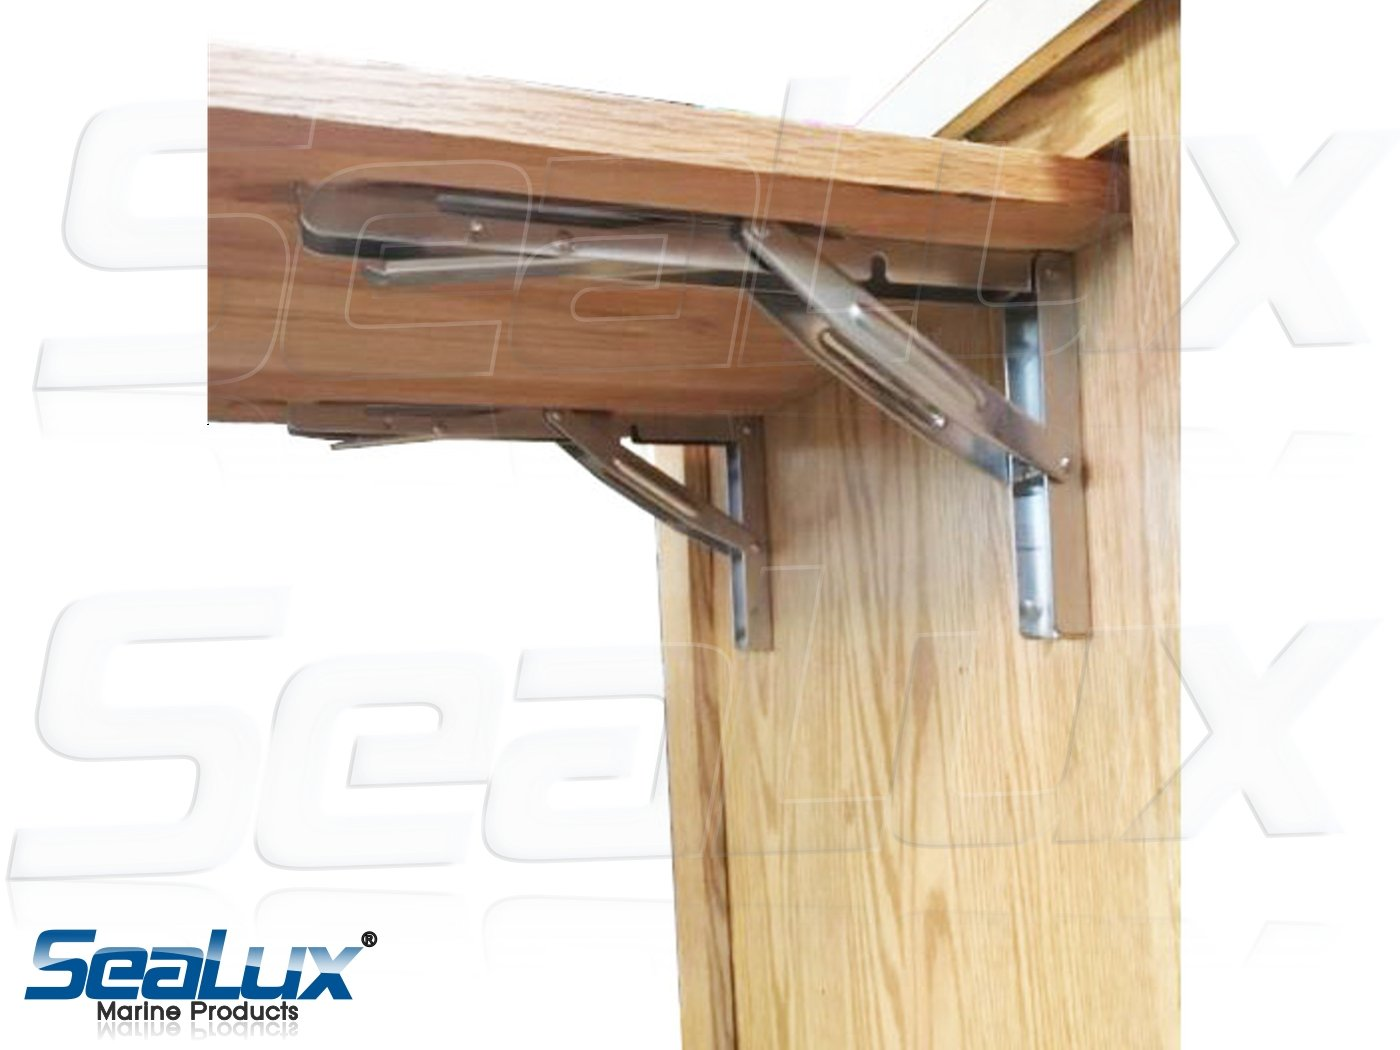 SeaLux Stainless Steel Folding Brackets 90 degree Shelf, Bench, Table Support 12'' Long with easy reach Long release Handle / Max. Bearing 330 lb (Sold as 2 pcs) by SeaLux Marine Products (Image #4)